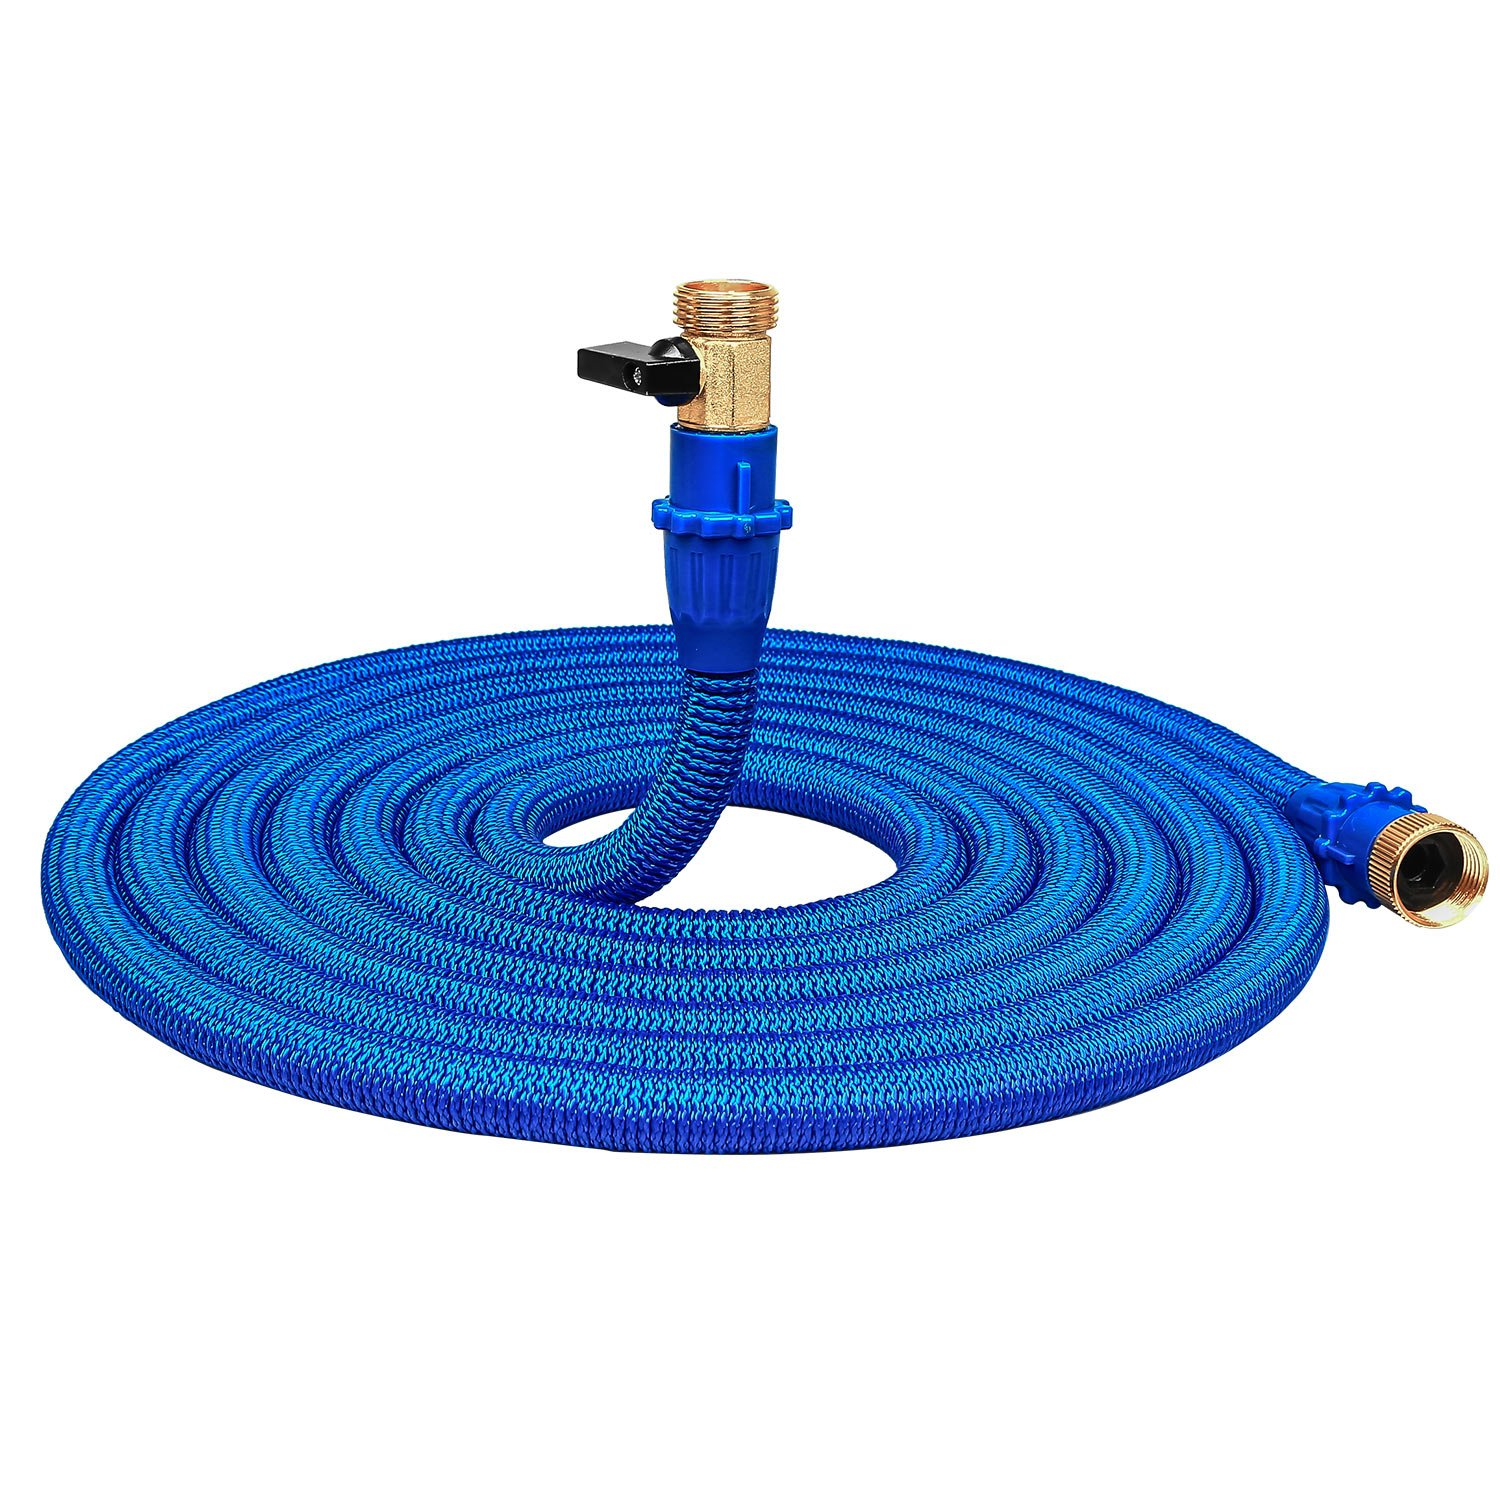 50FT Blue Expandable Garden Hose, Water Hose With Double Latex Core, 3/4 inch Solid Brass Connector and Extra Strength Fabric Flexible Spray Hose